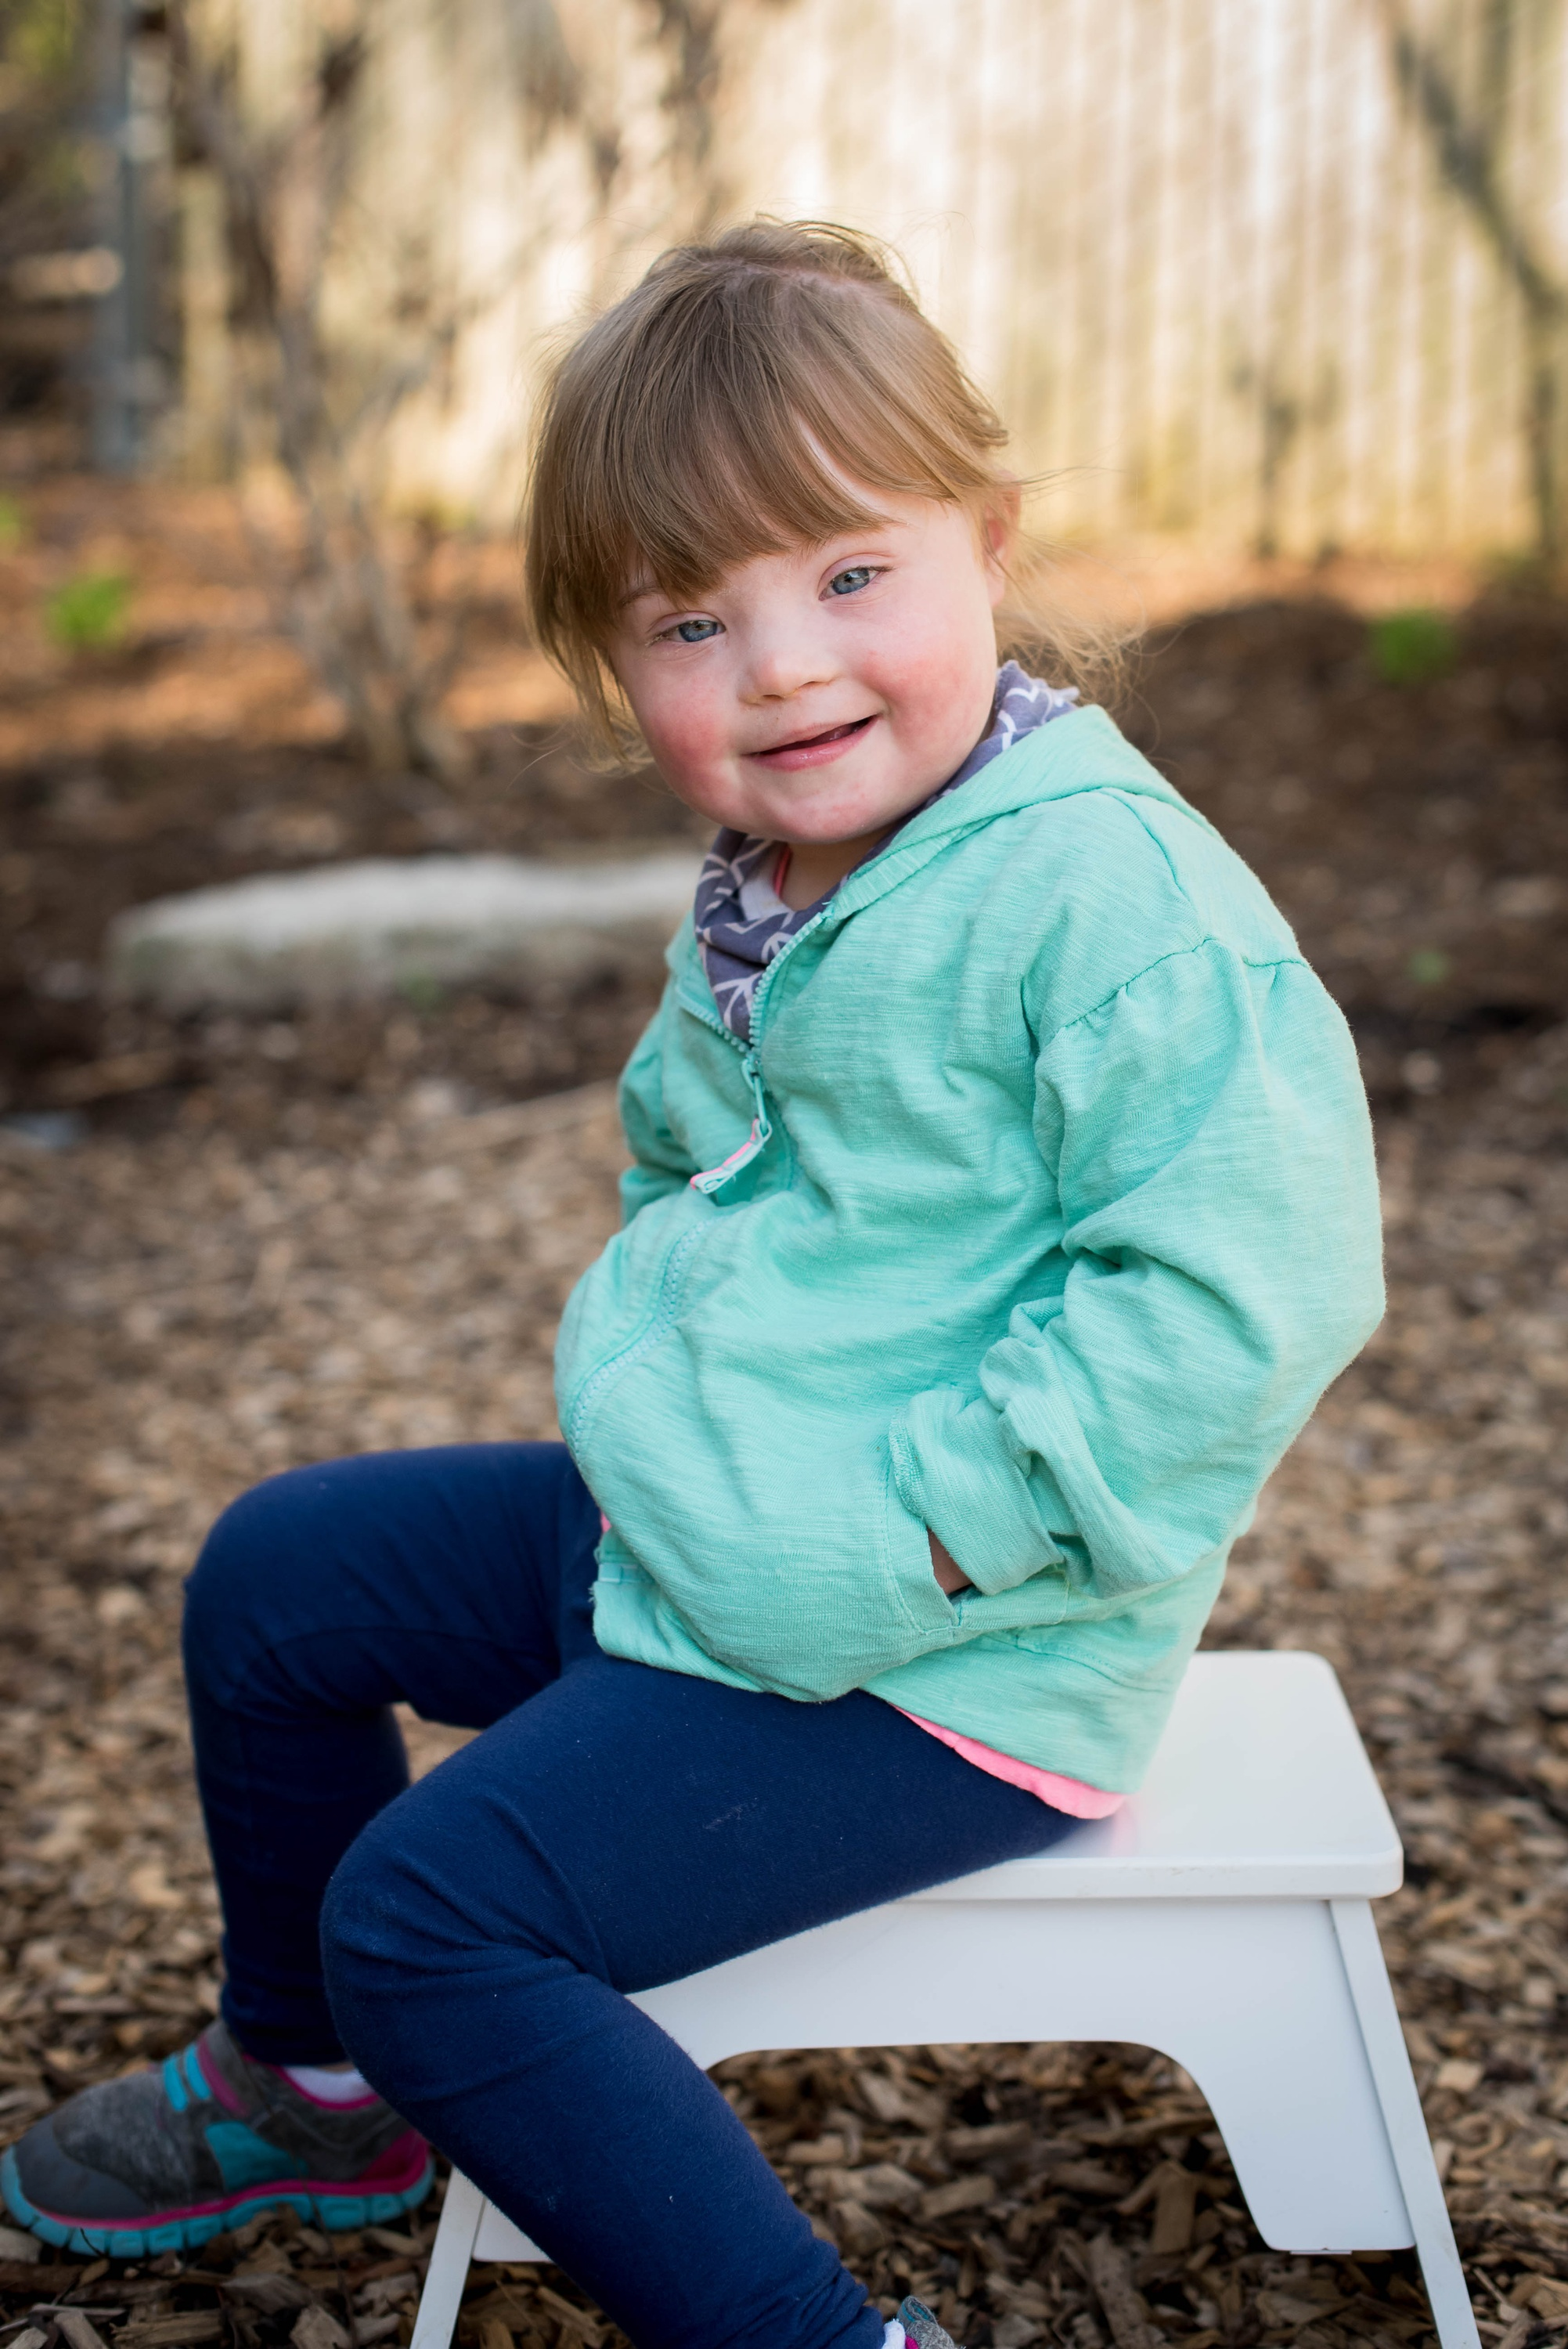 Our Mission - The mission of MADSS is to provide support to individuals with Down syndrome and their families while advancing acceptance, inclusion and opportunity for individuals with Down syndrome in South Central Wisconsin.Learn More